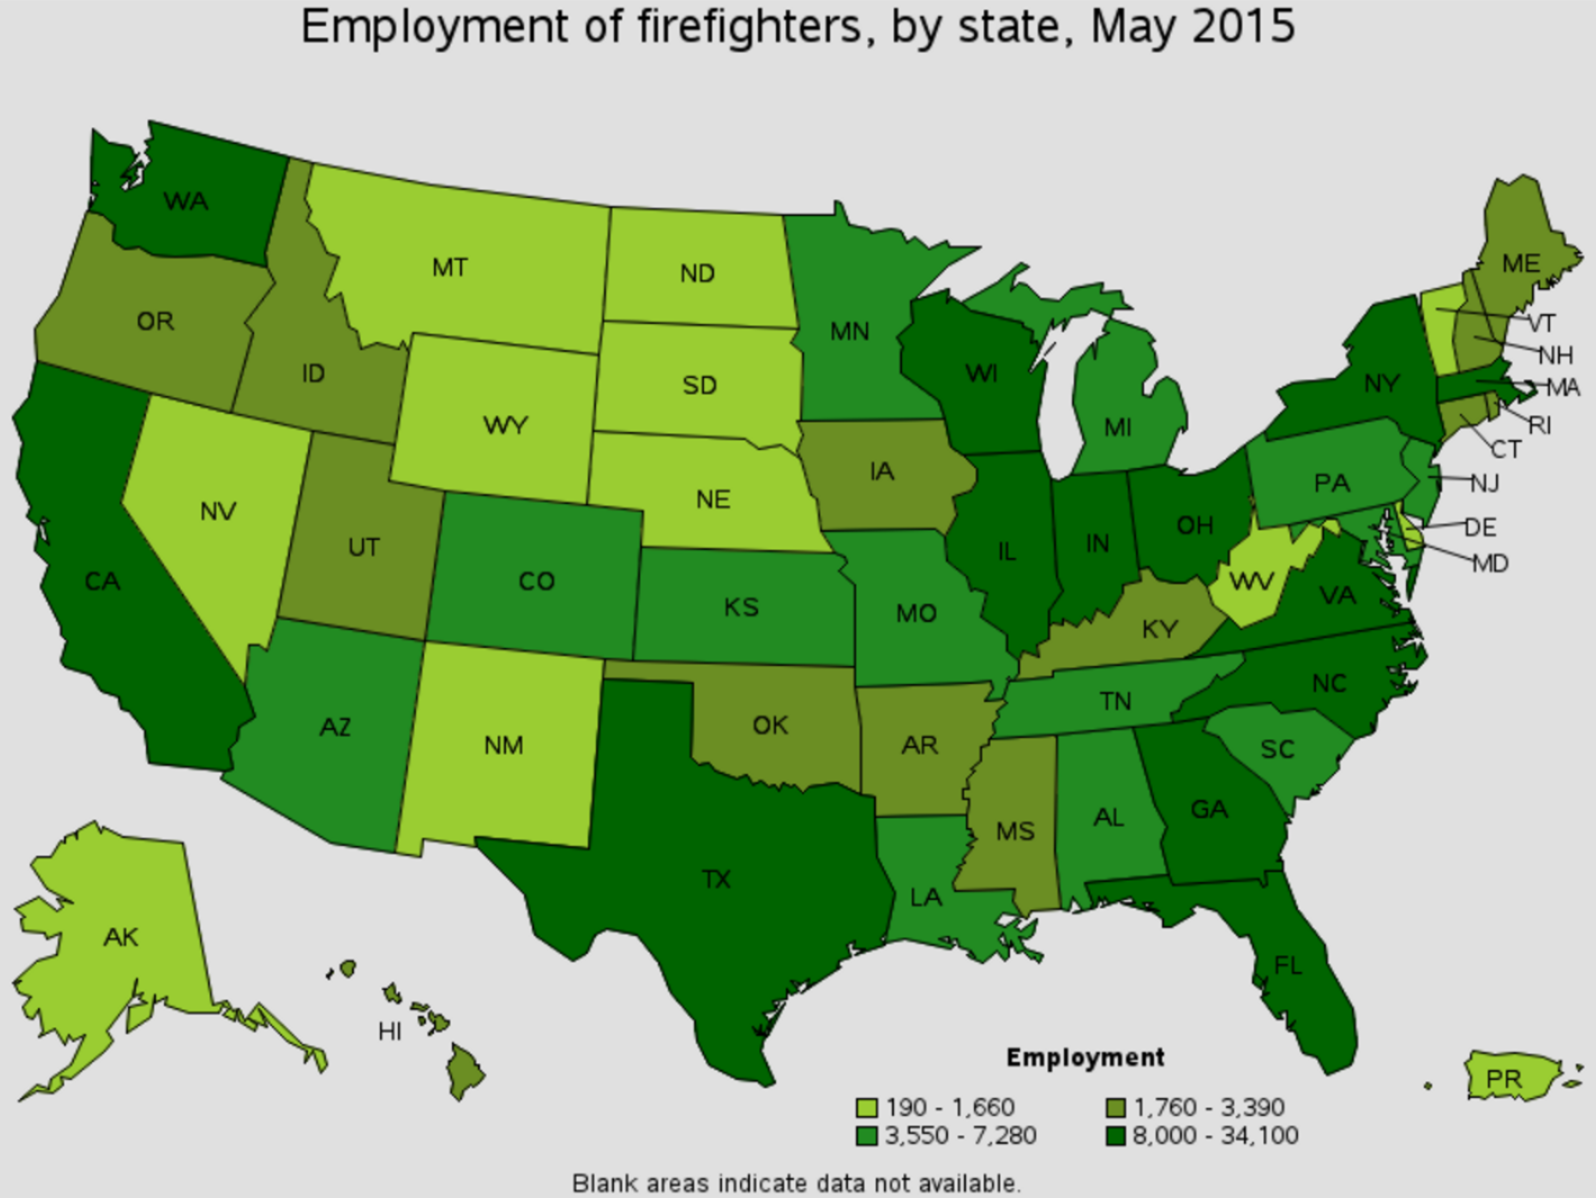 firefighter job outlook by state Woodsboro Texas